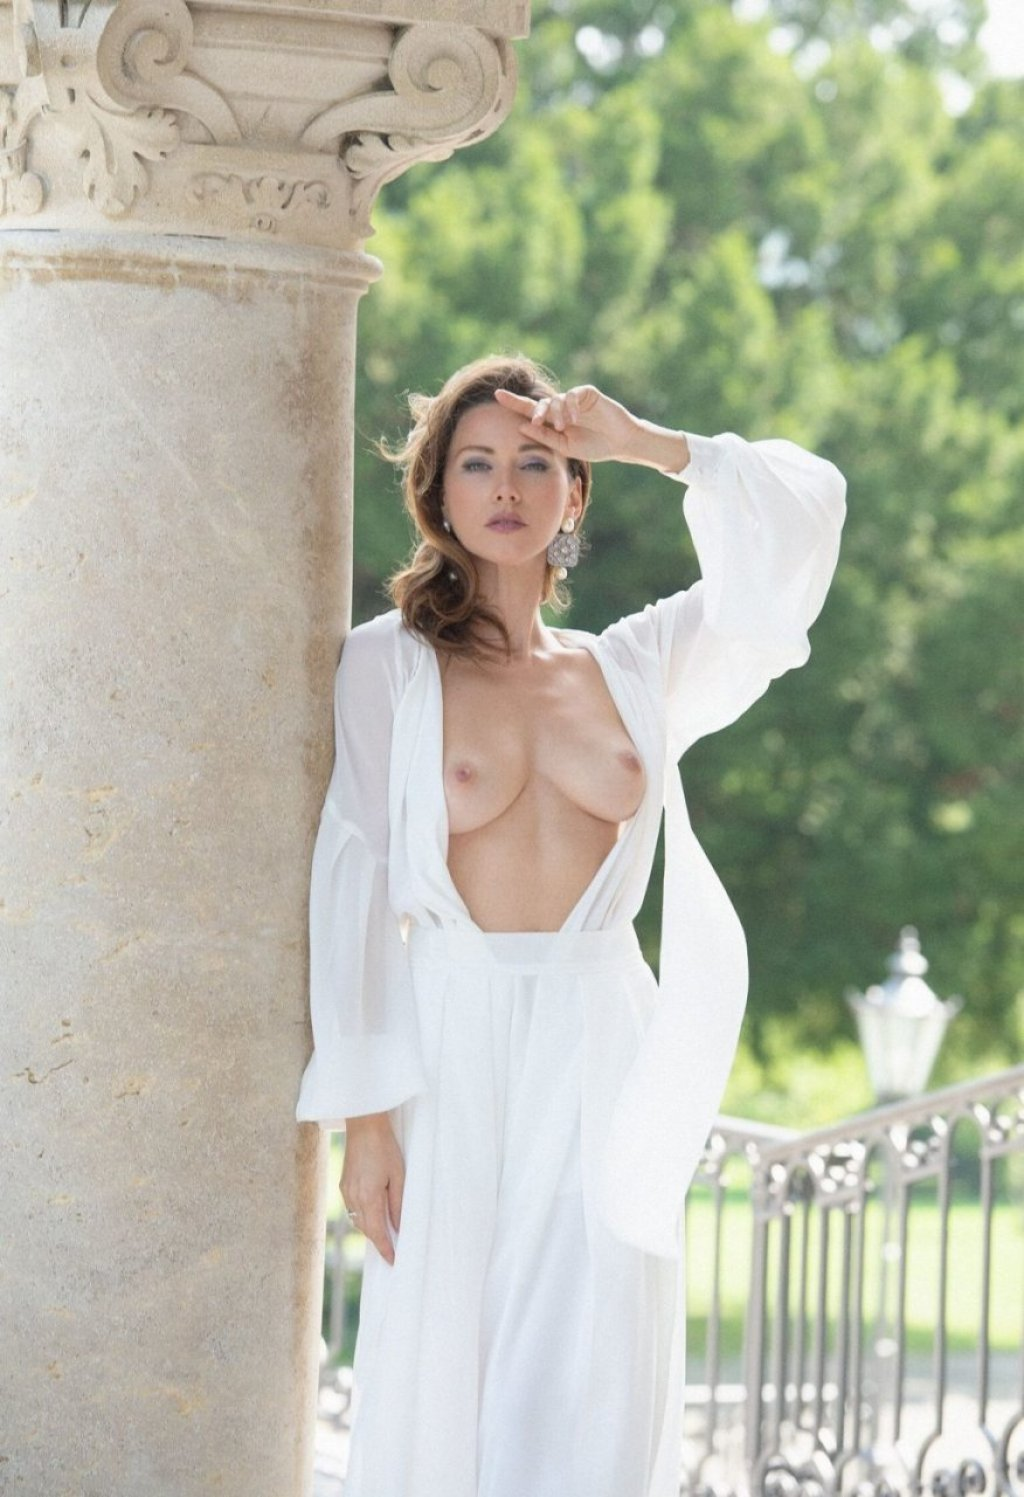 Olga Alberti Nude (7 Photos)